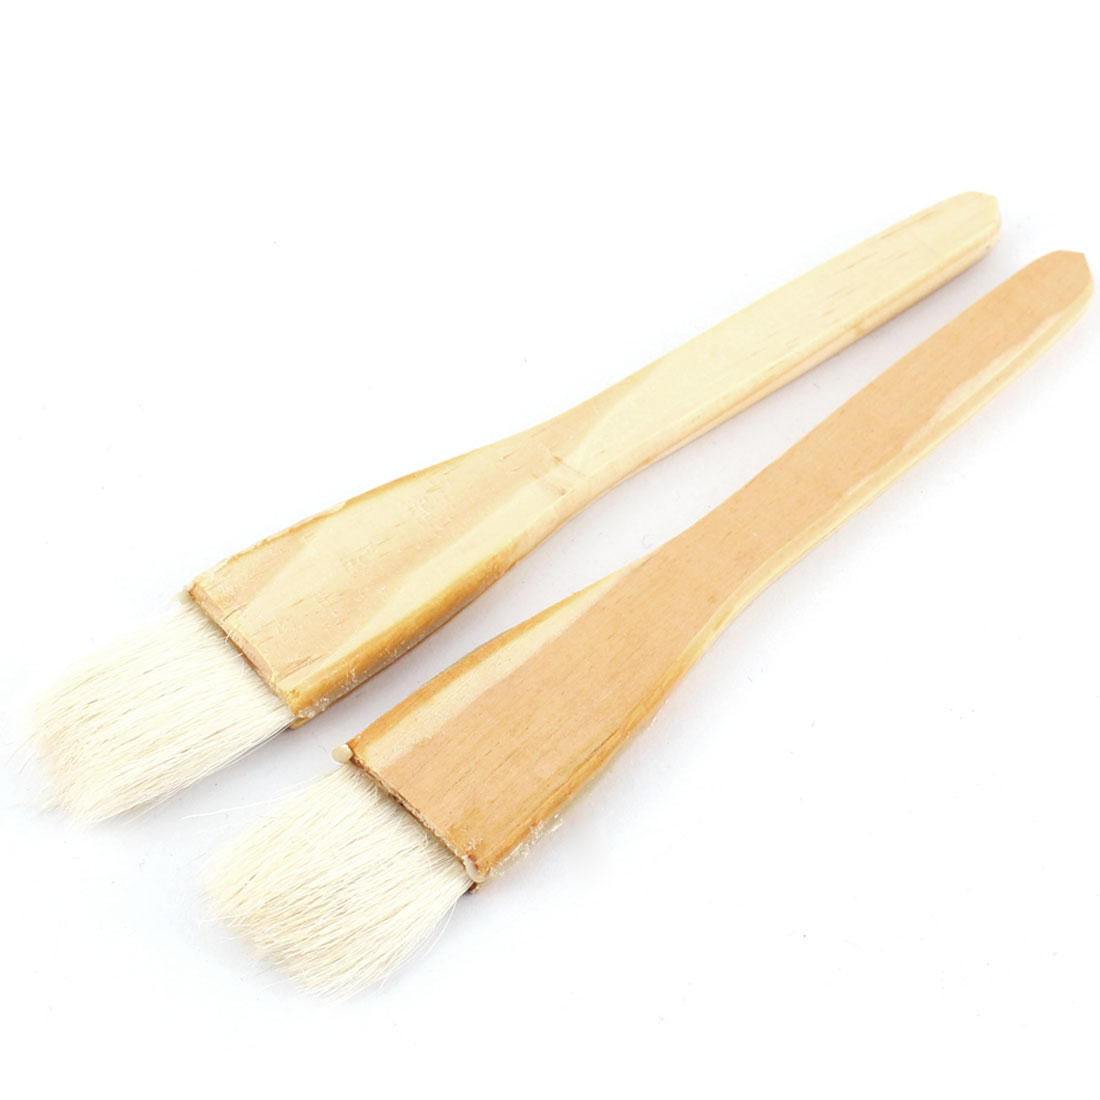 2pcs Soft Bristle Wooden Handle Oil Paint Painter Brush 15.5cm x 2.5cm